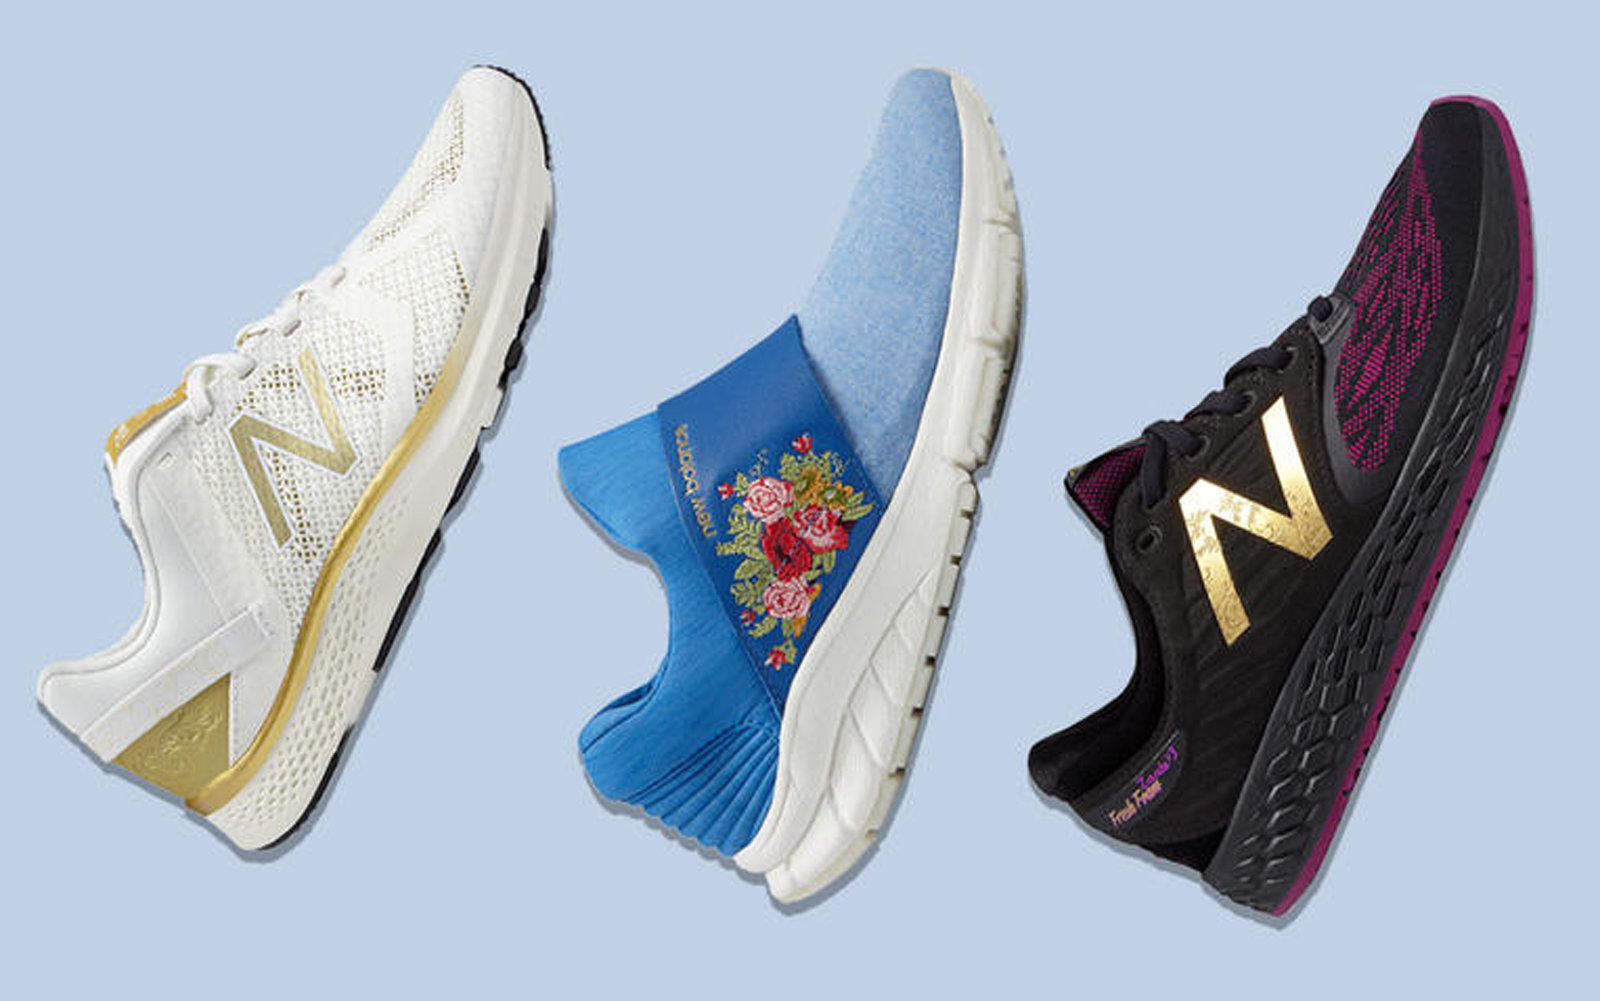 New Balance x Beauty and the Beast Sneakers